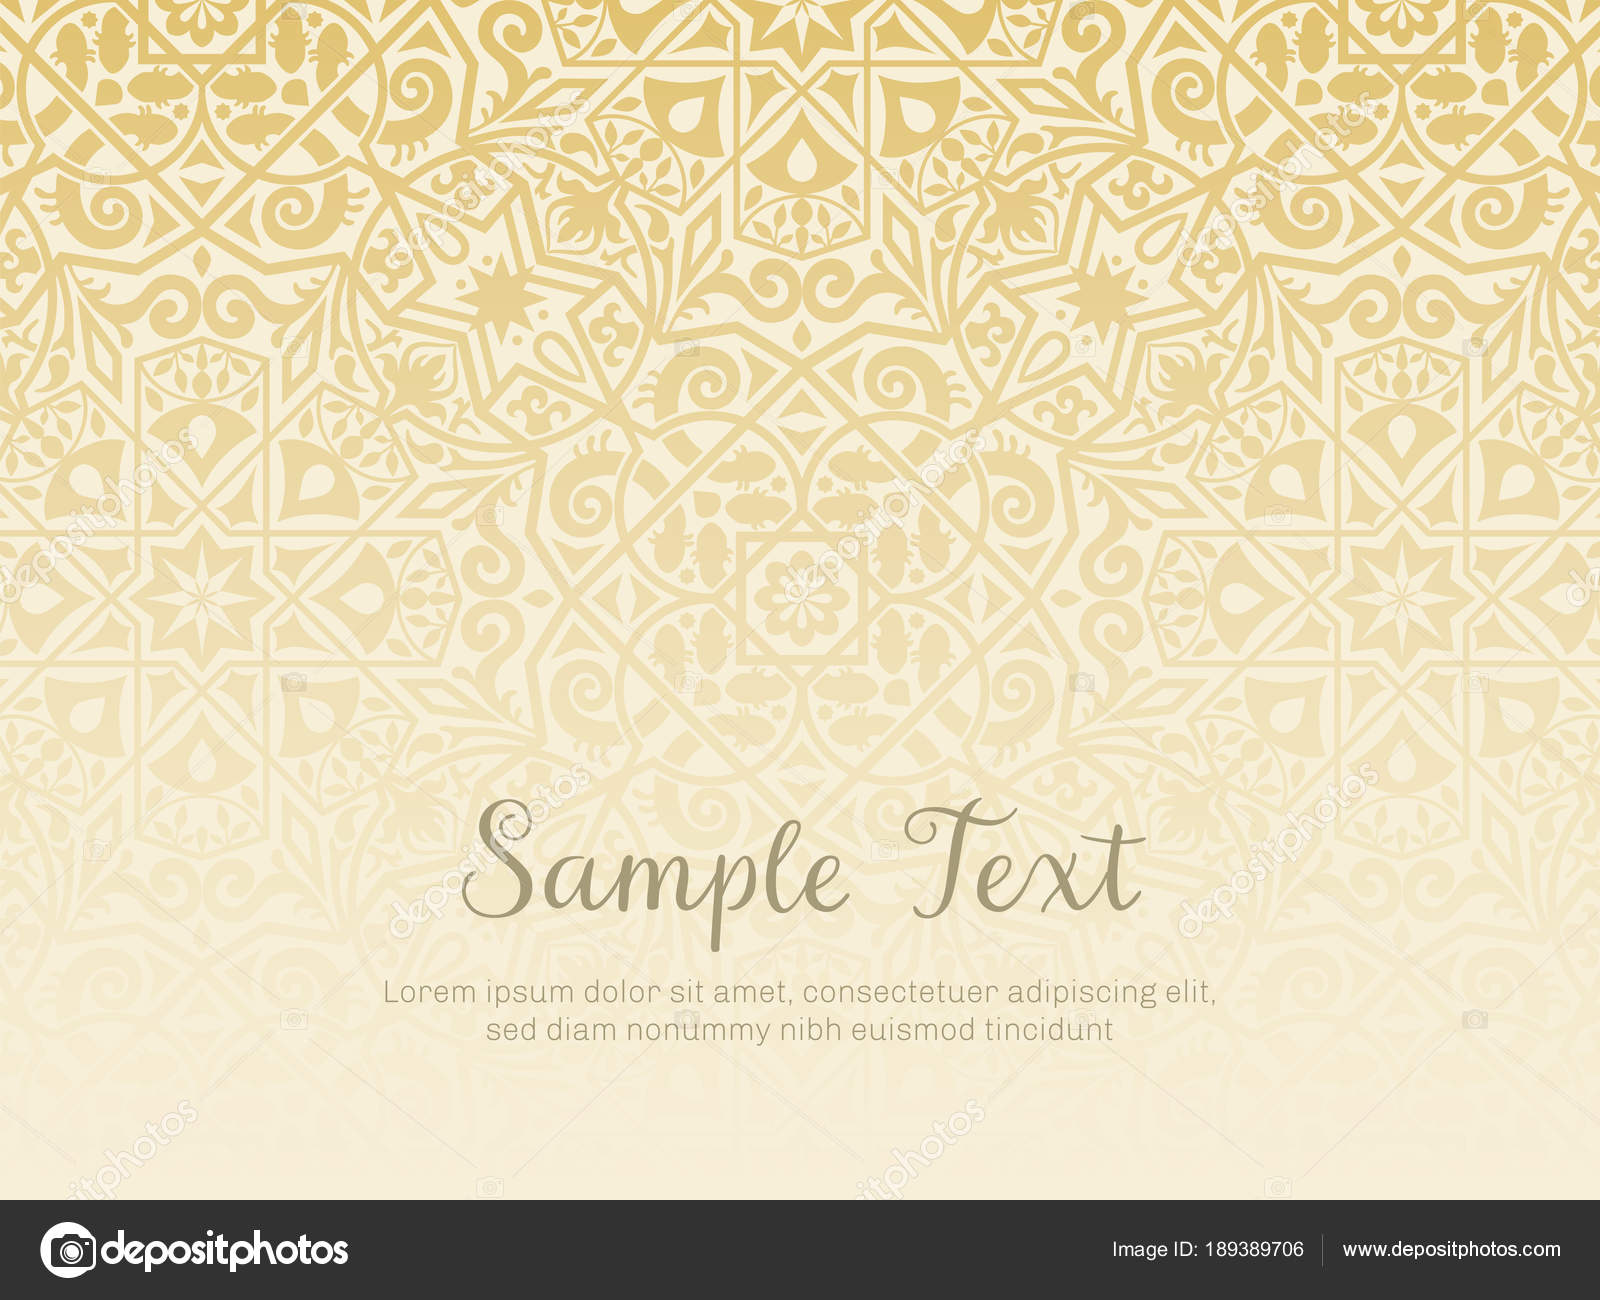 organic arabesque background design golden texture stock vector